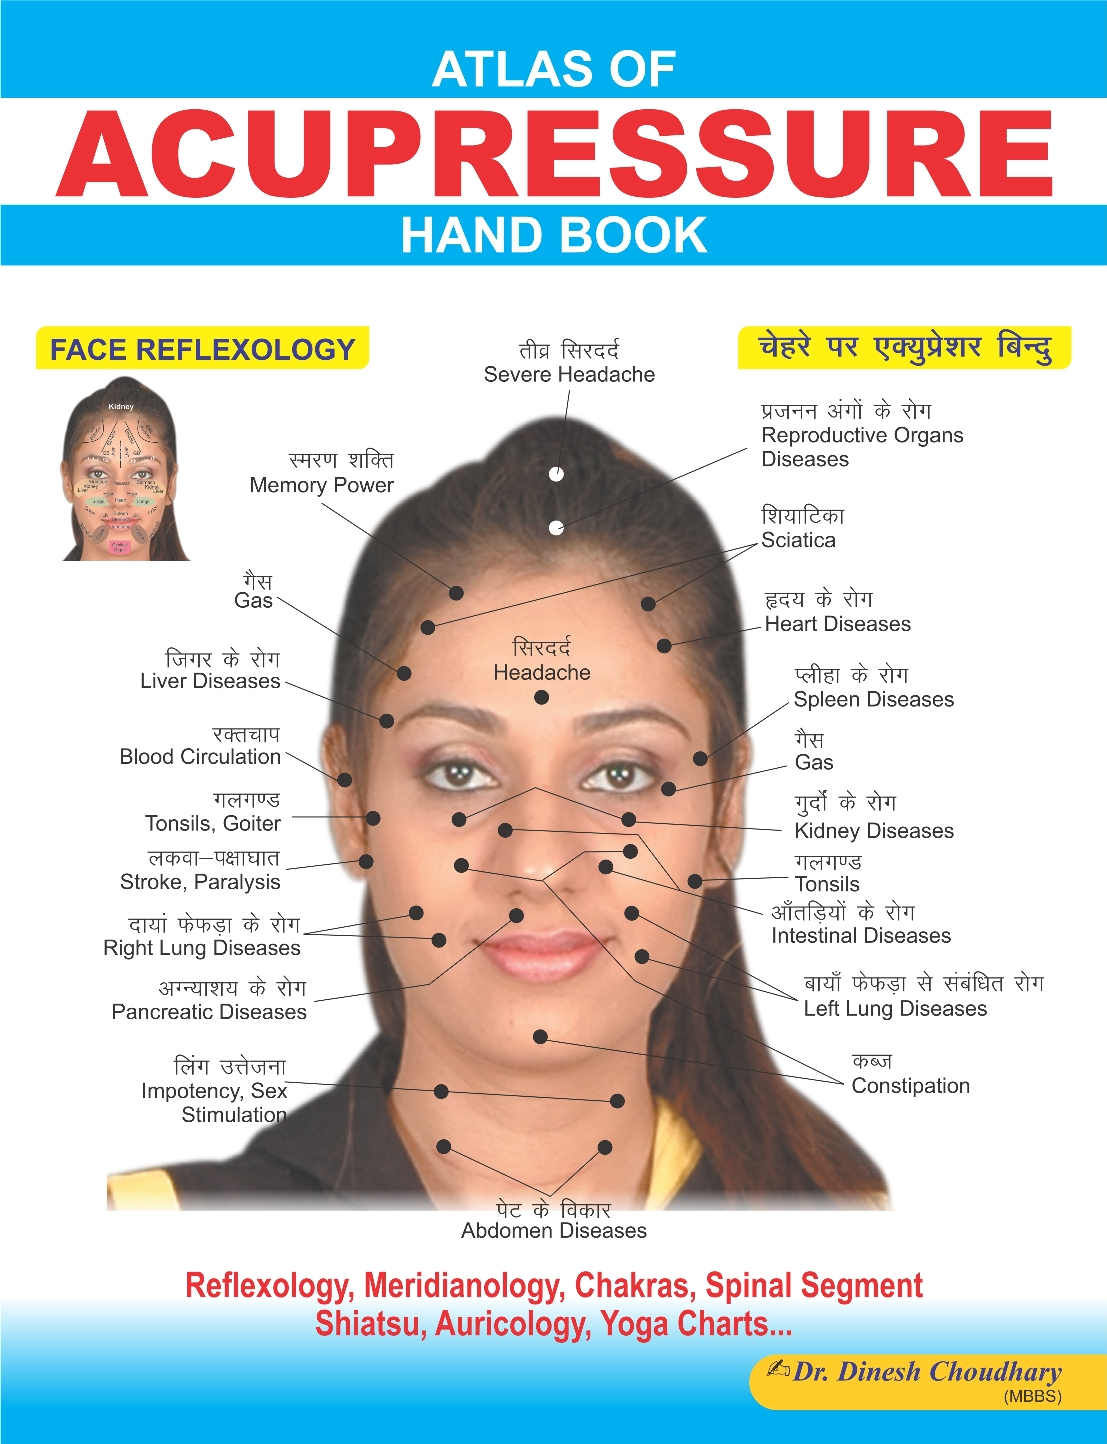 Atlas of Acupressure - Hand Book  - 572